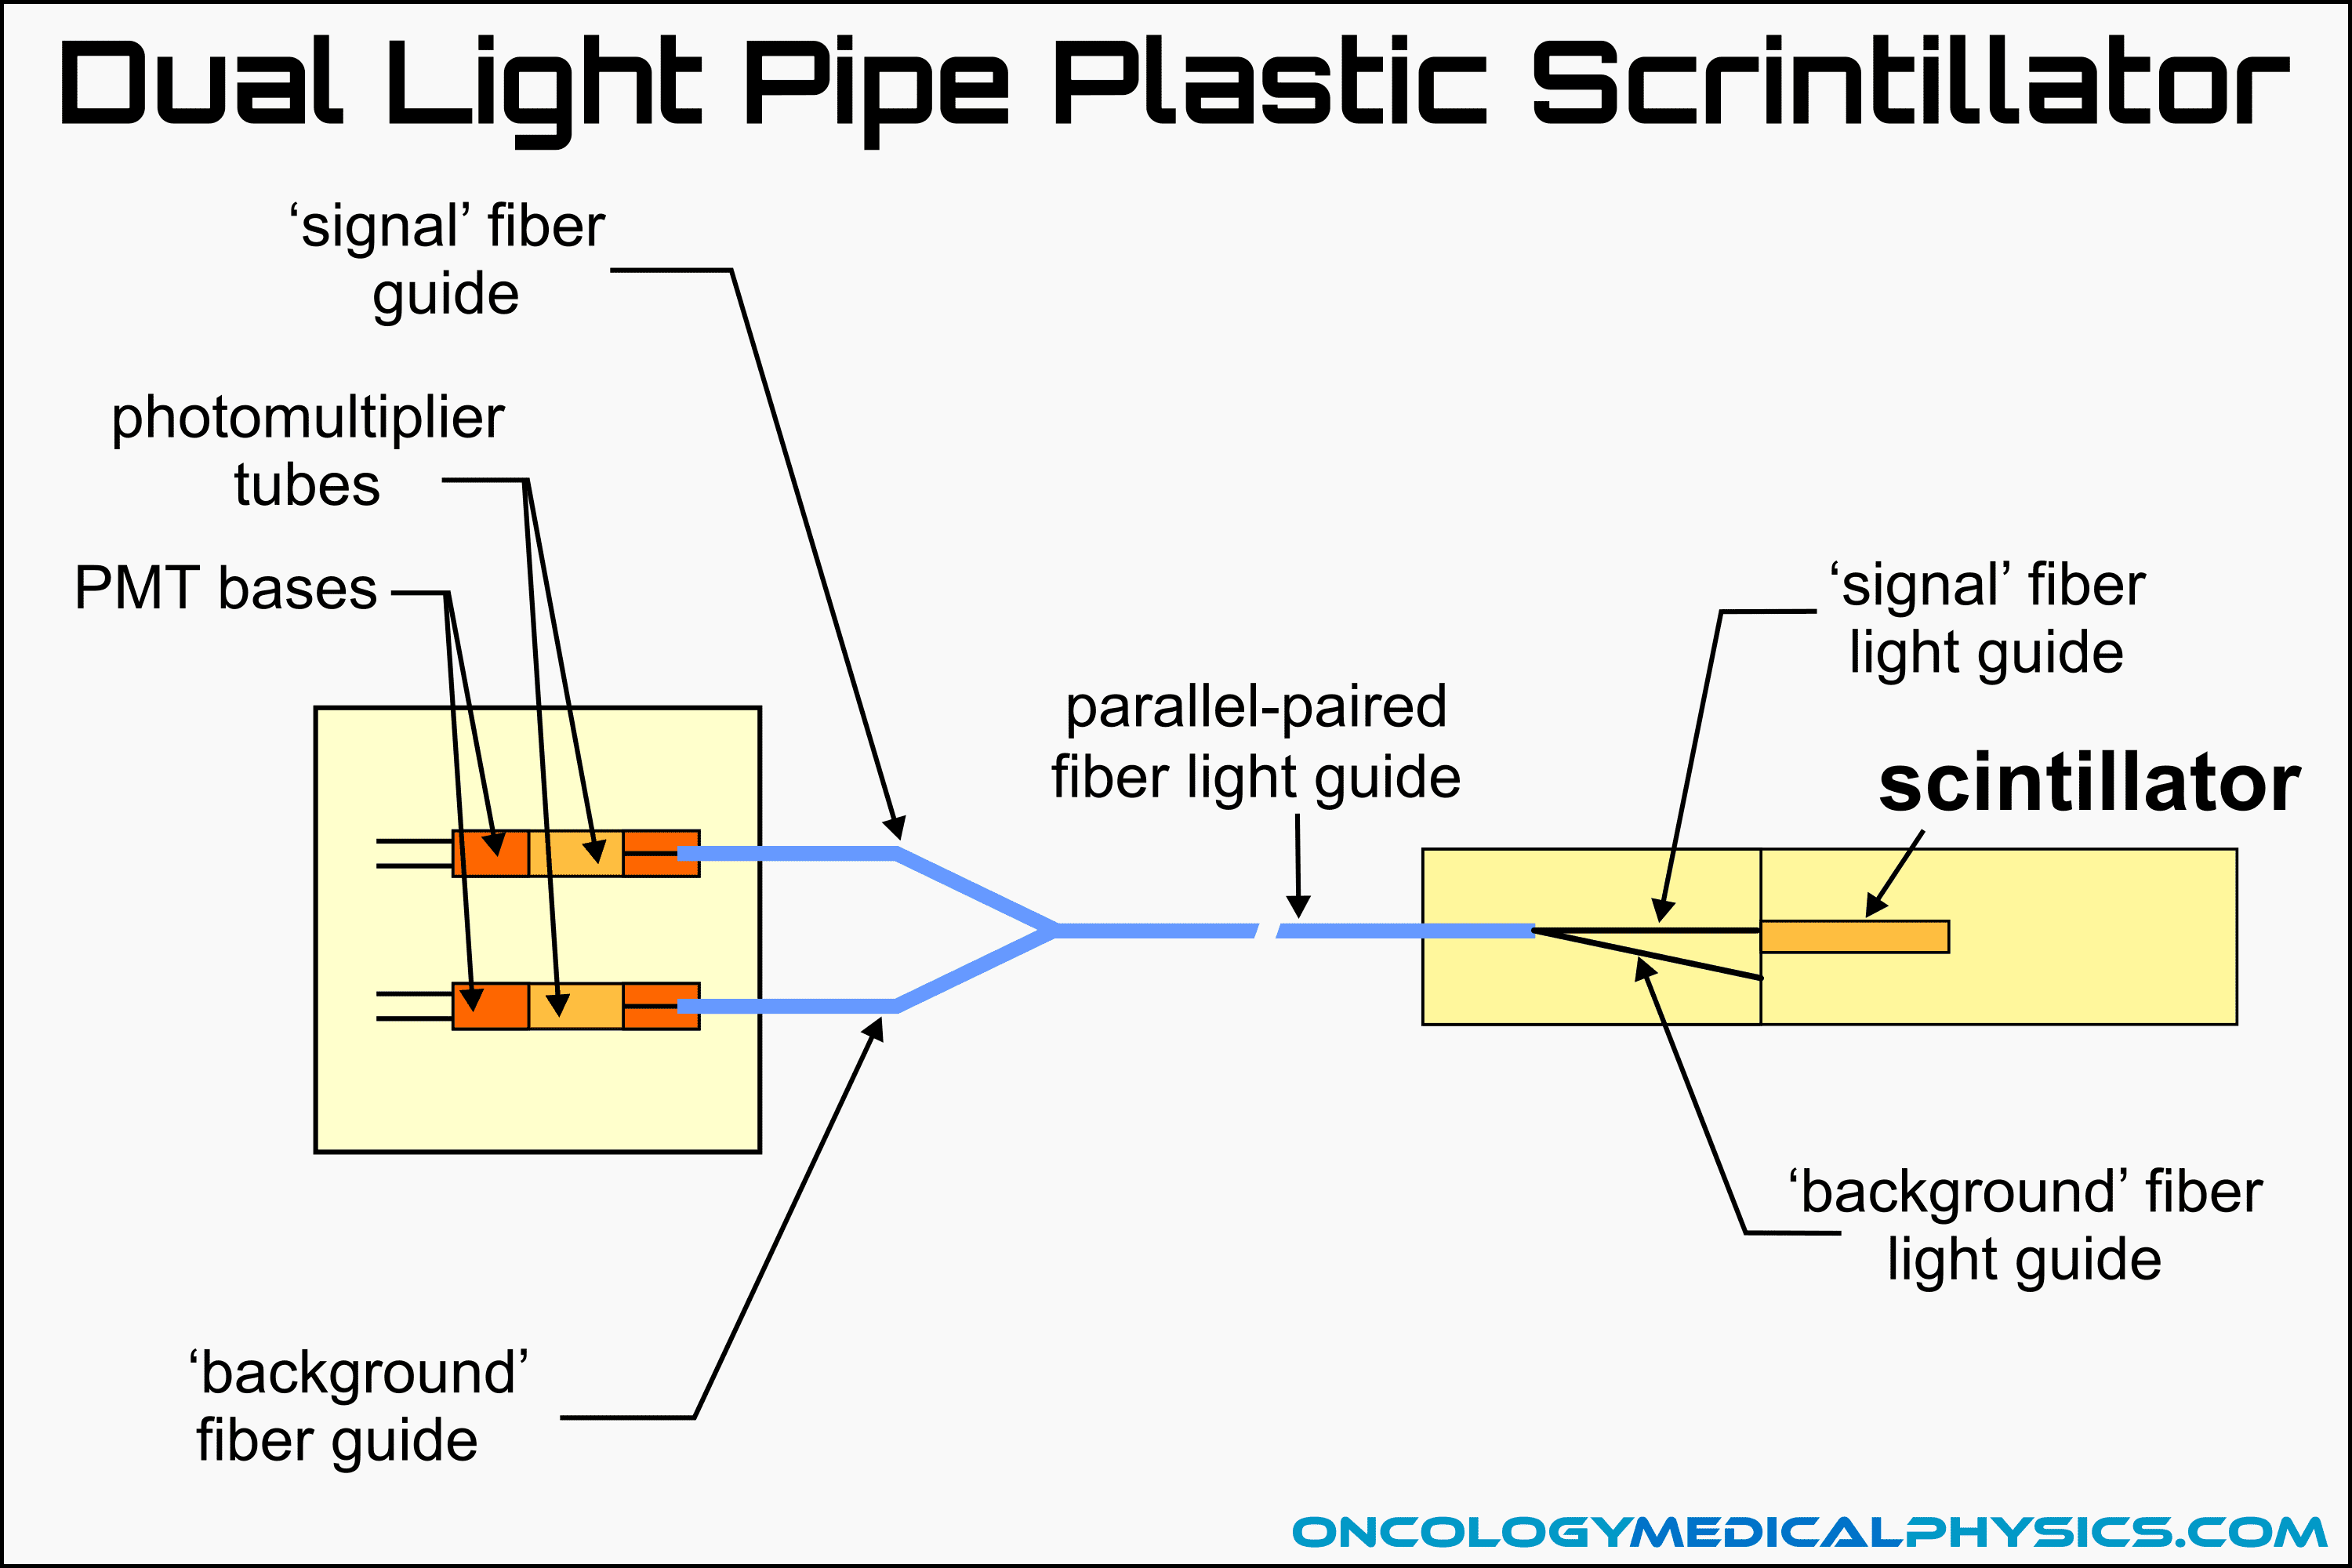 Illustration of a plastic scintillation radiation dosimeter using the dual light pipe design.